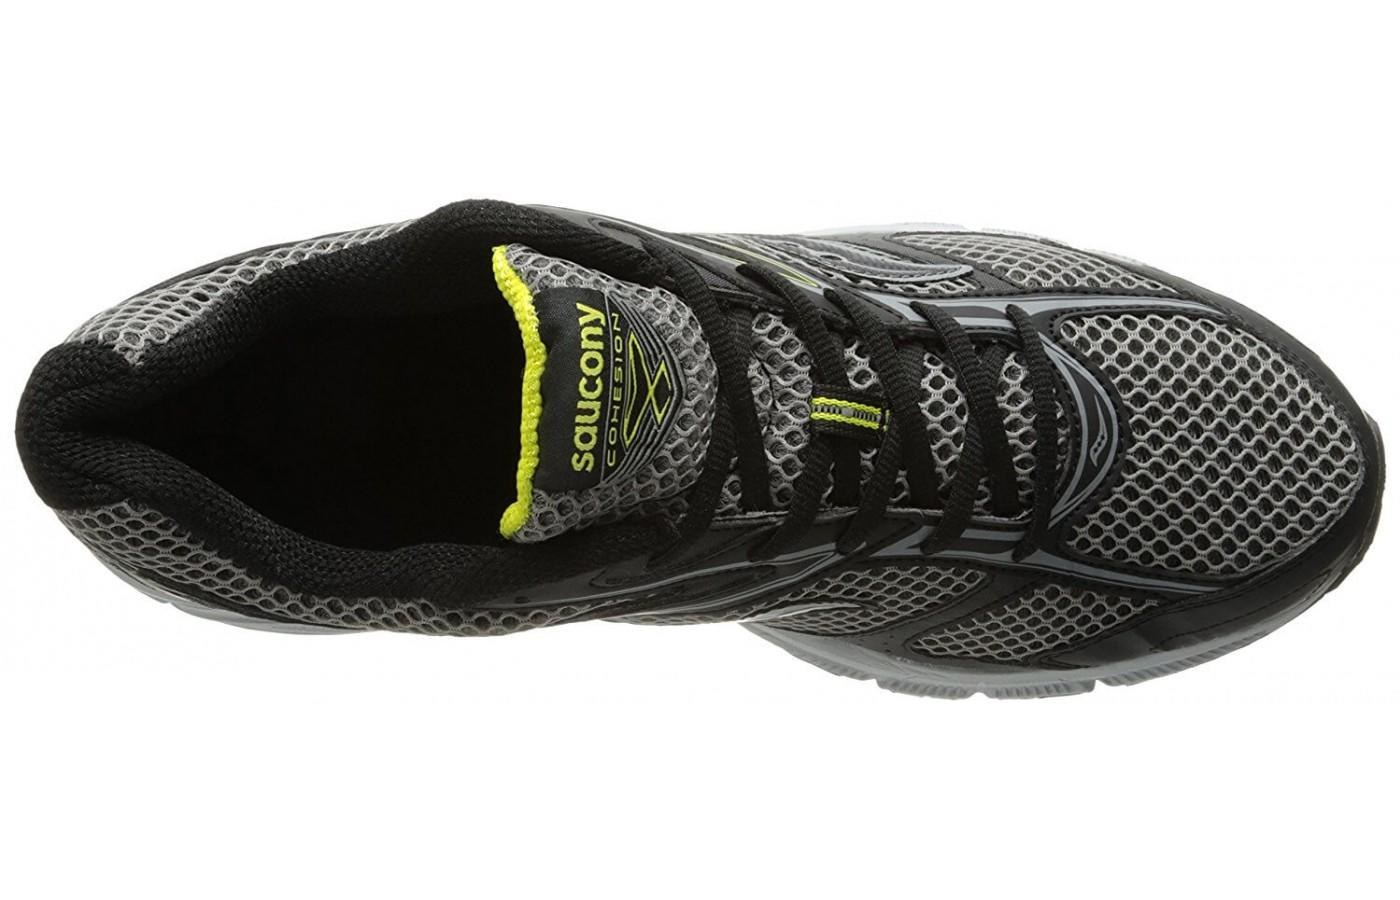 the Saucony Cohesion TR 8 has lots of breathable mesh so the foot stays cool and dry